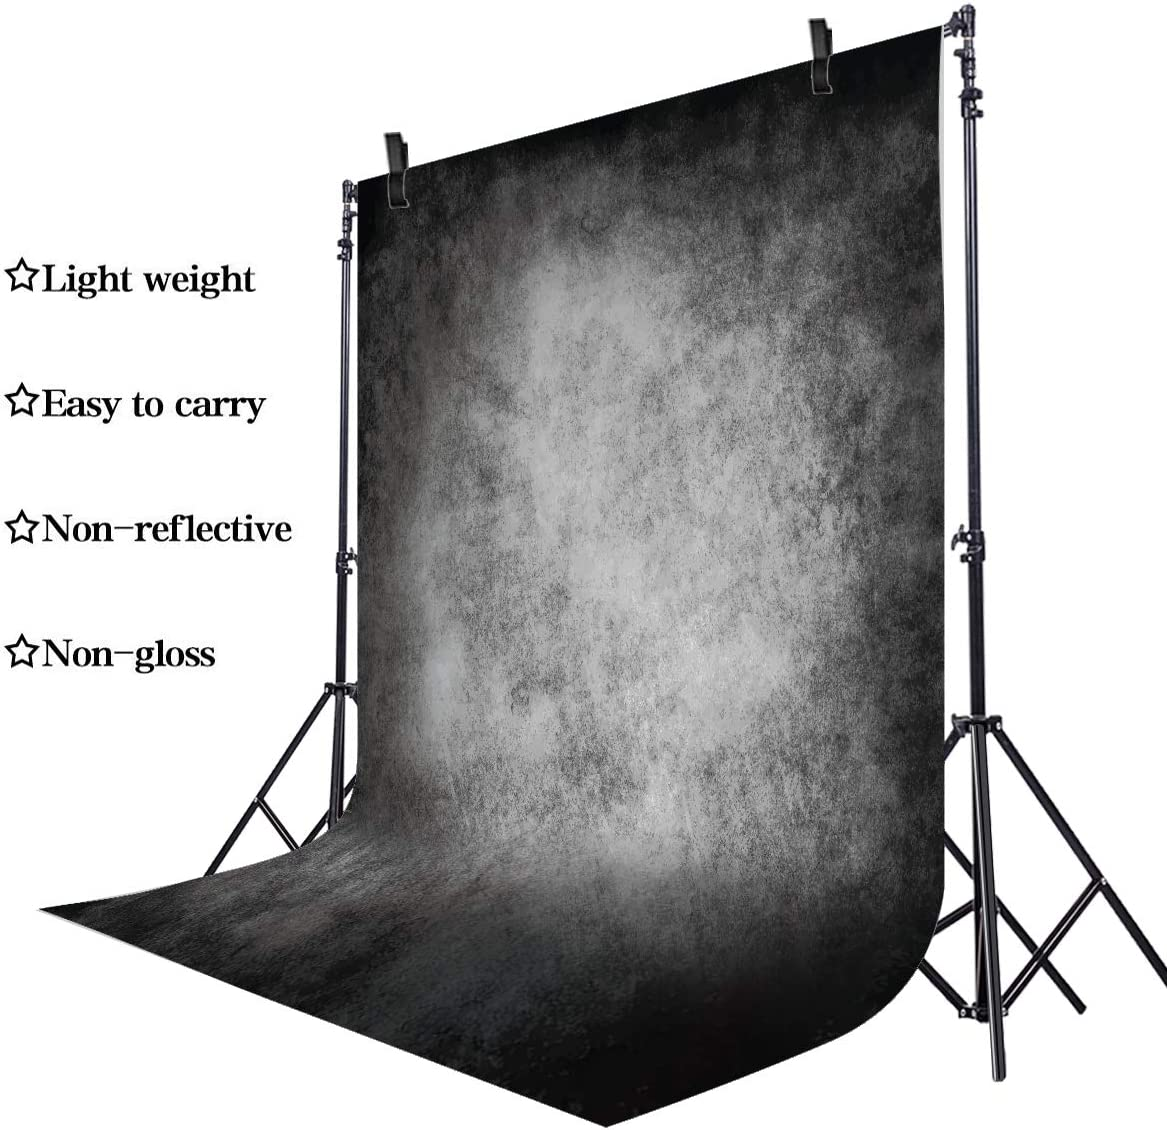 Riyidecor Fabric Rod Pocket Backdrop 5Wx7H Feet Old Art Master Rustic Abstract Black Gray Portrait Photography Backgrounds Home Party Decoration Photo Shoot